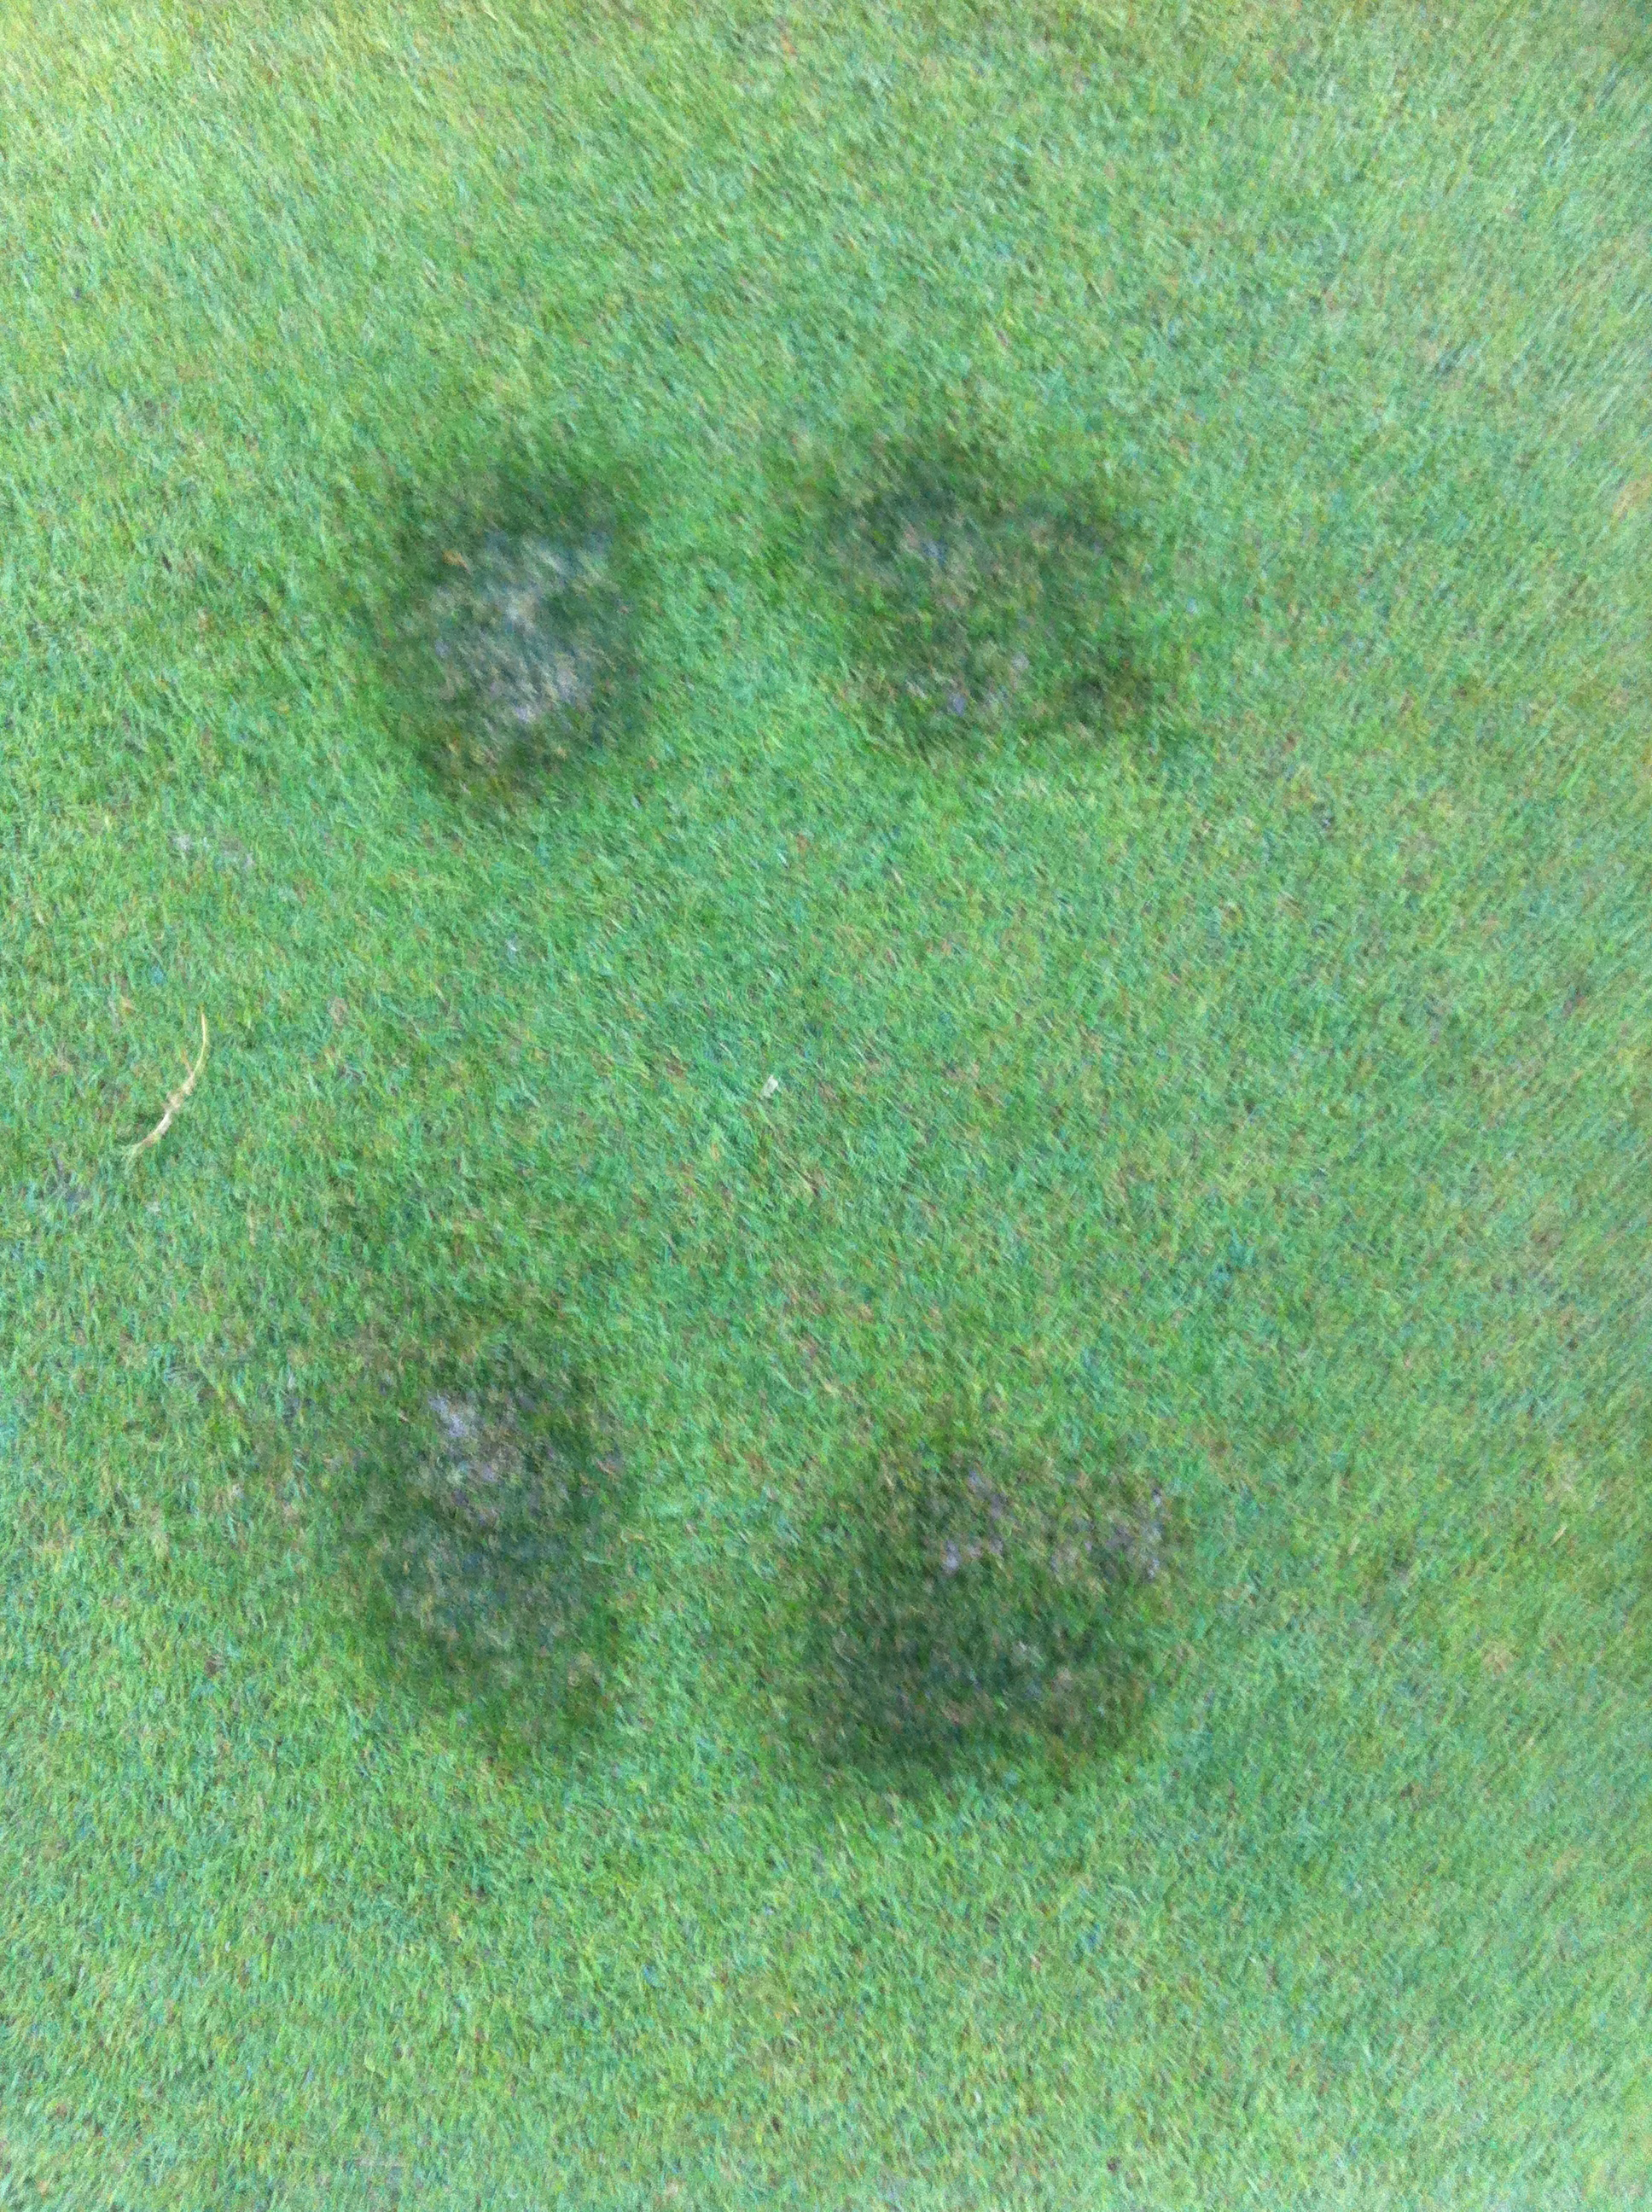 Foot Prints on the Putting Green